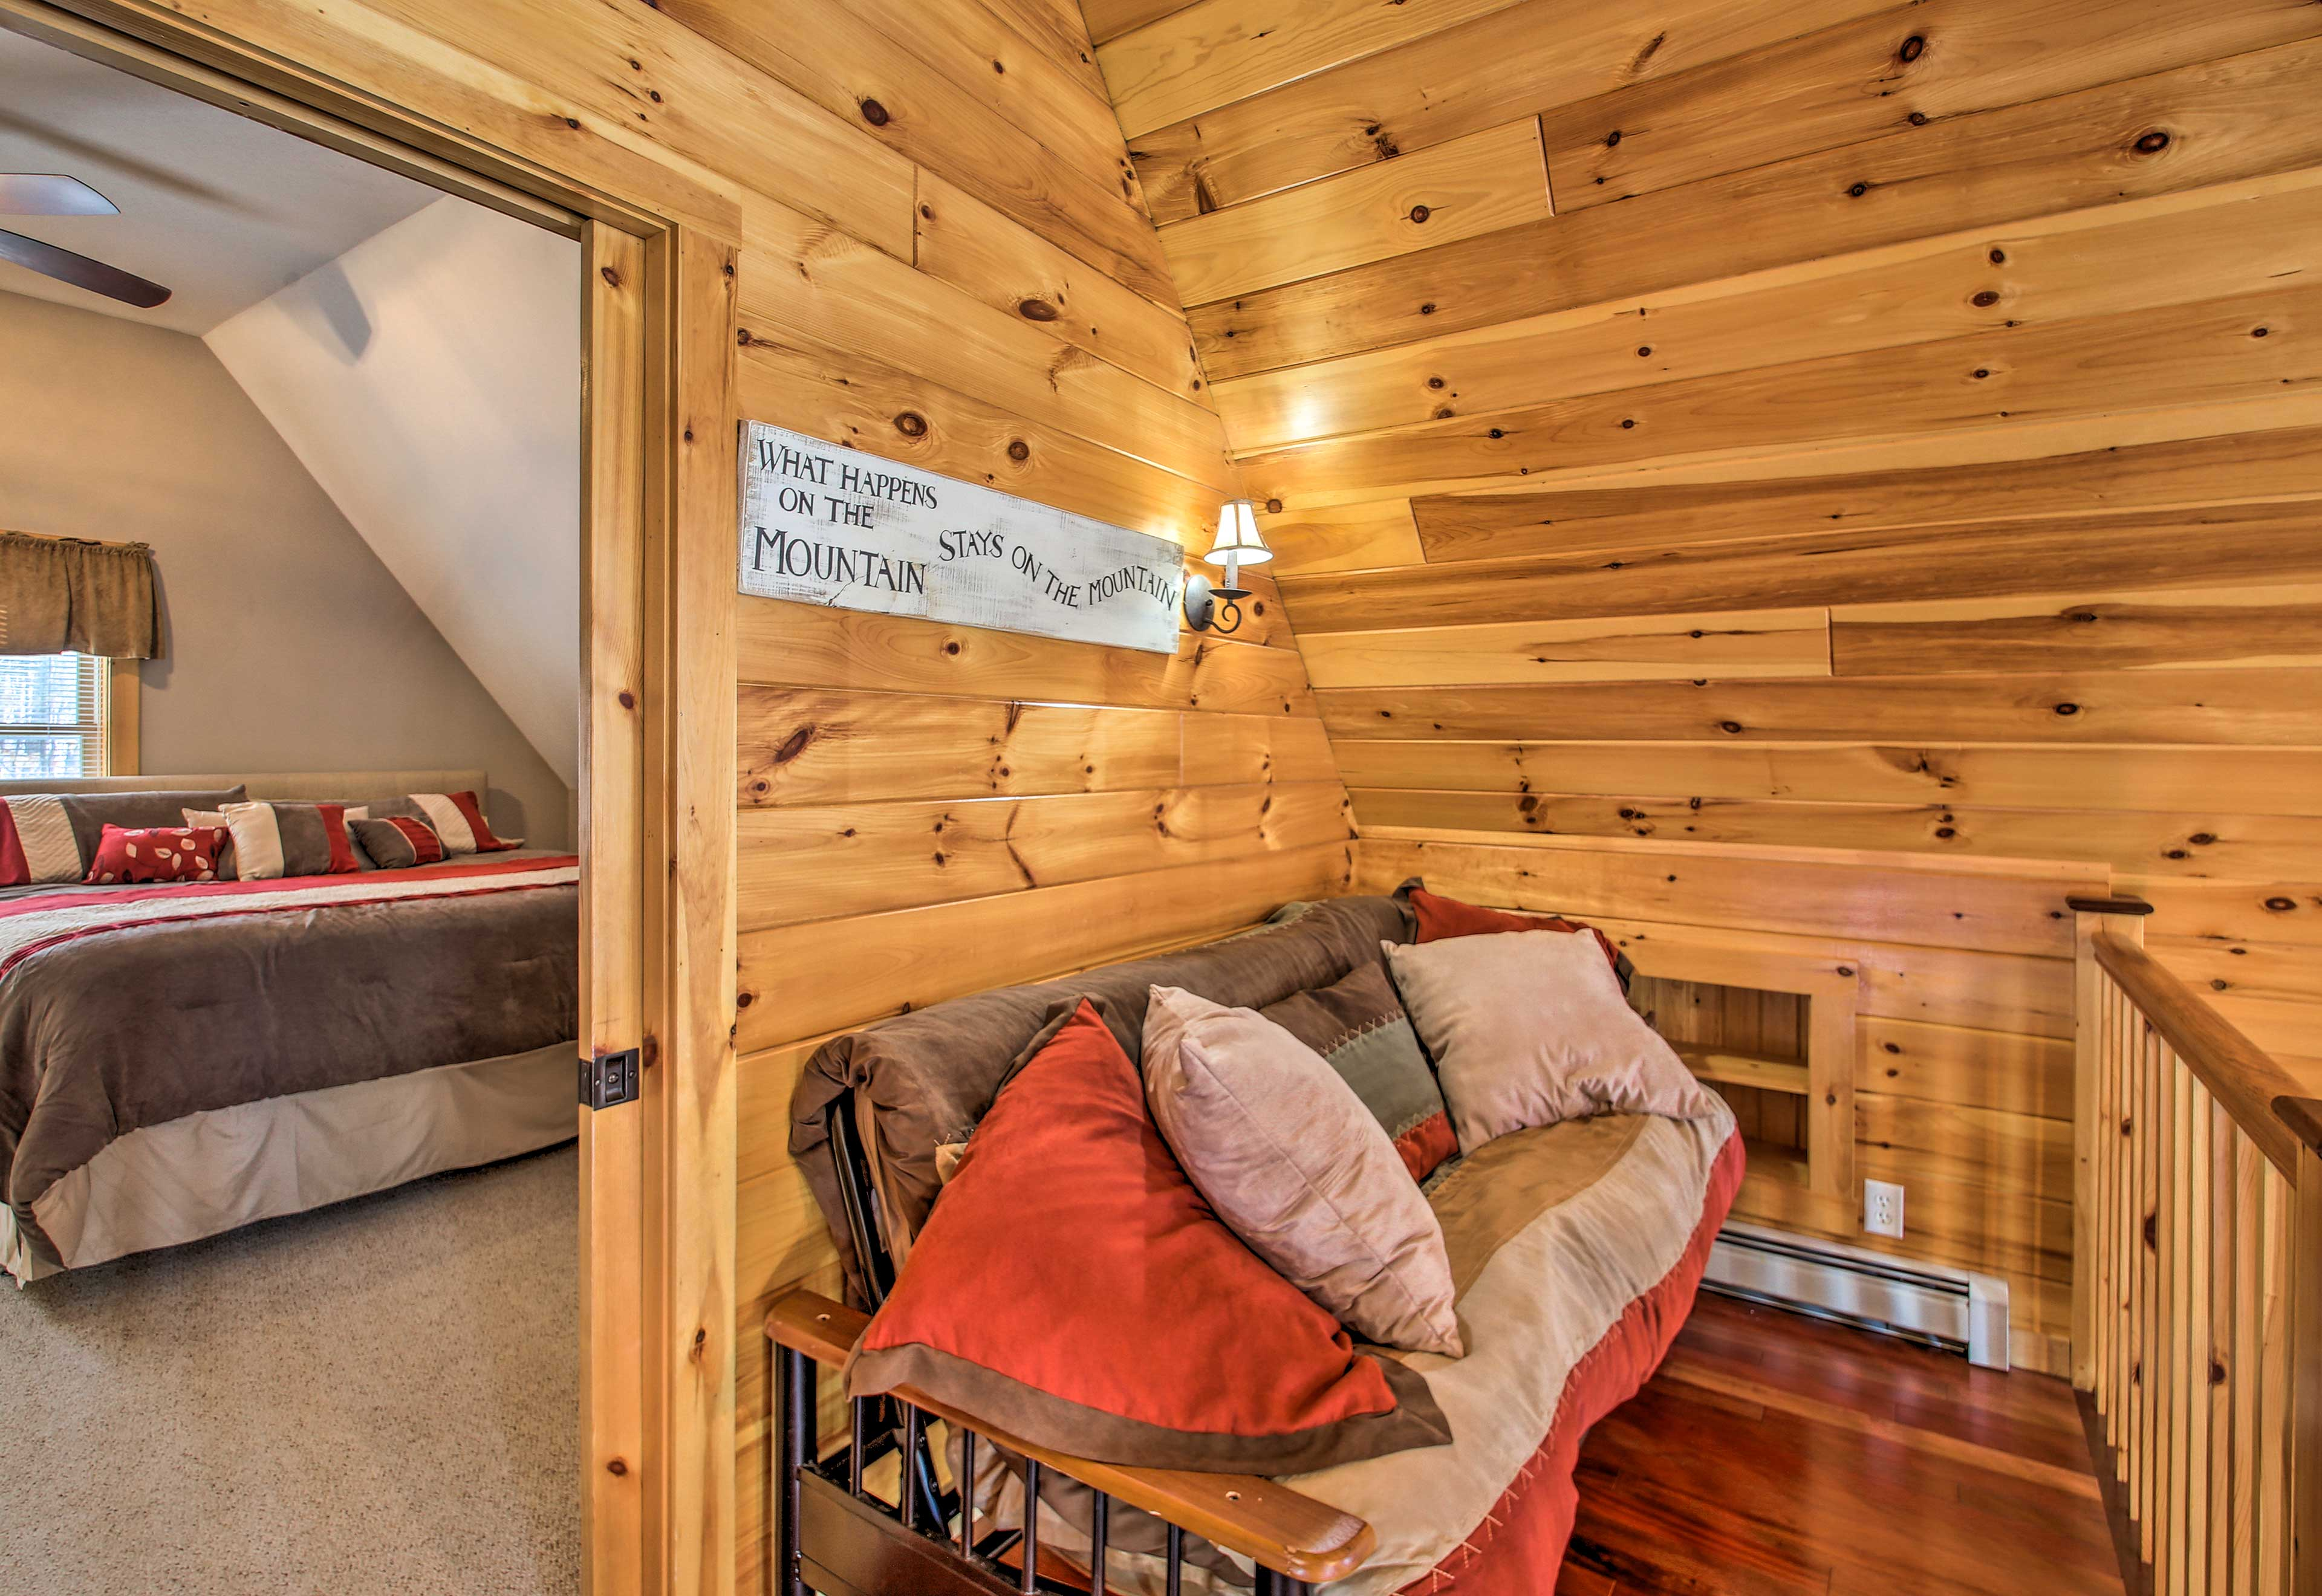 Head upstairs to the loft, which offers a full-sized futon.